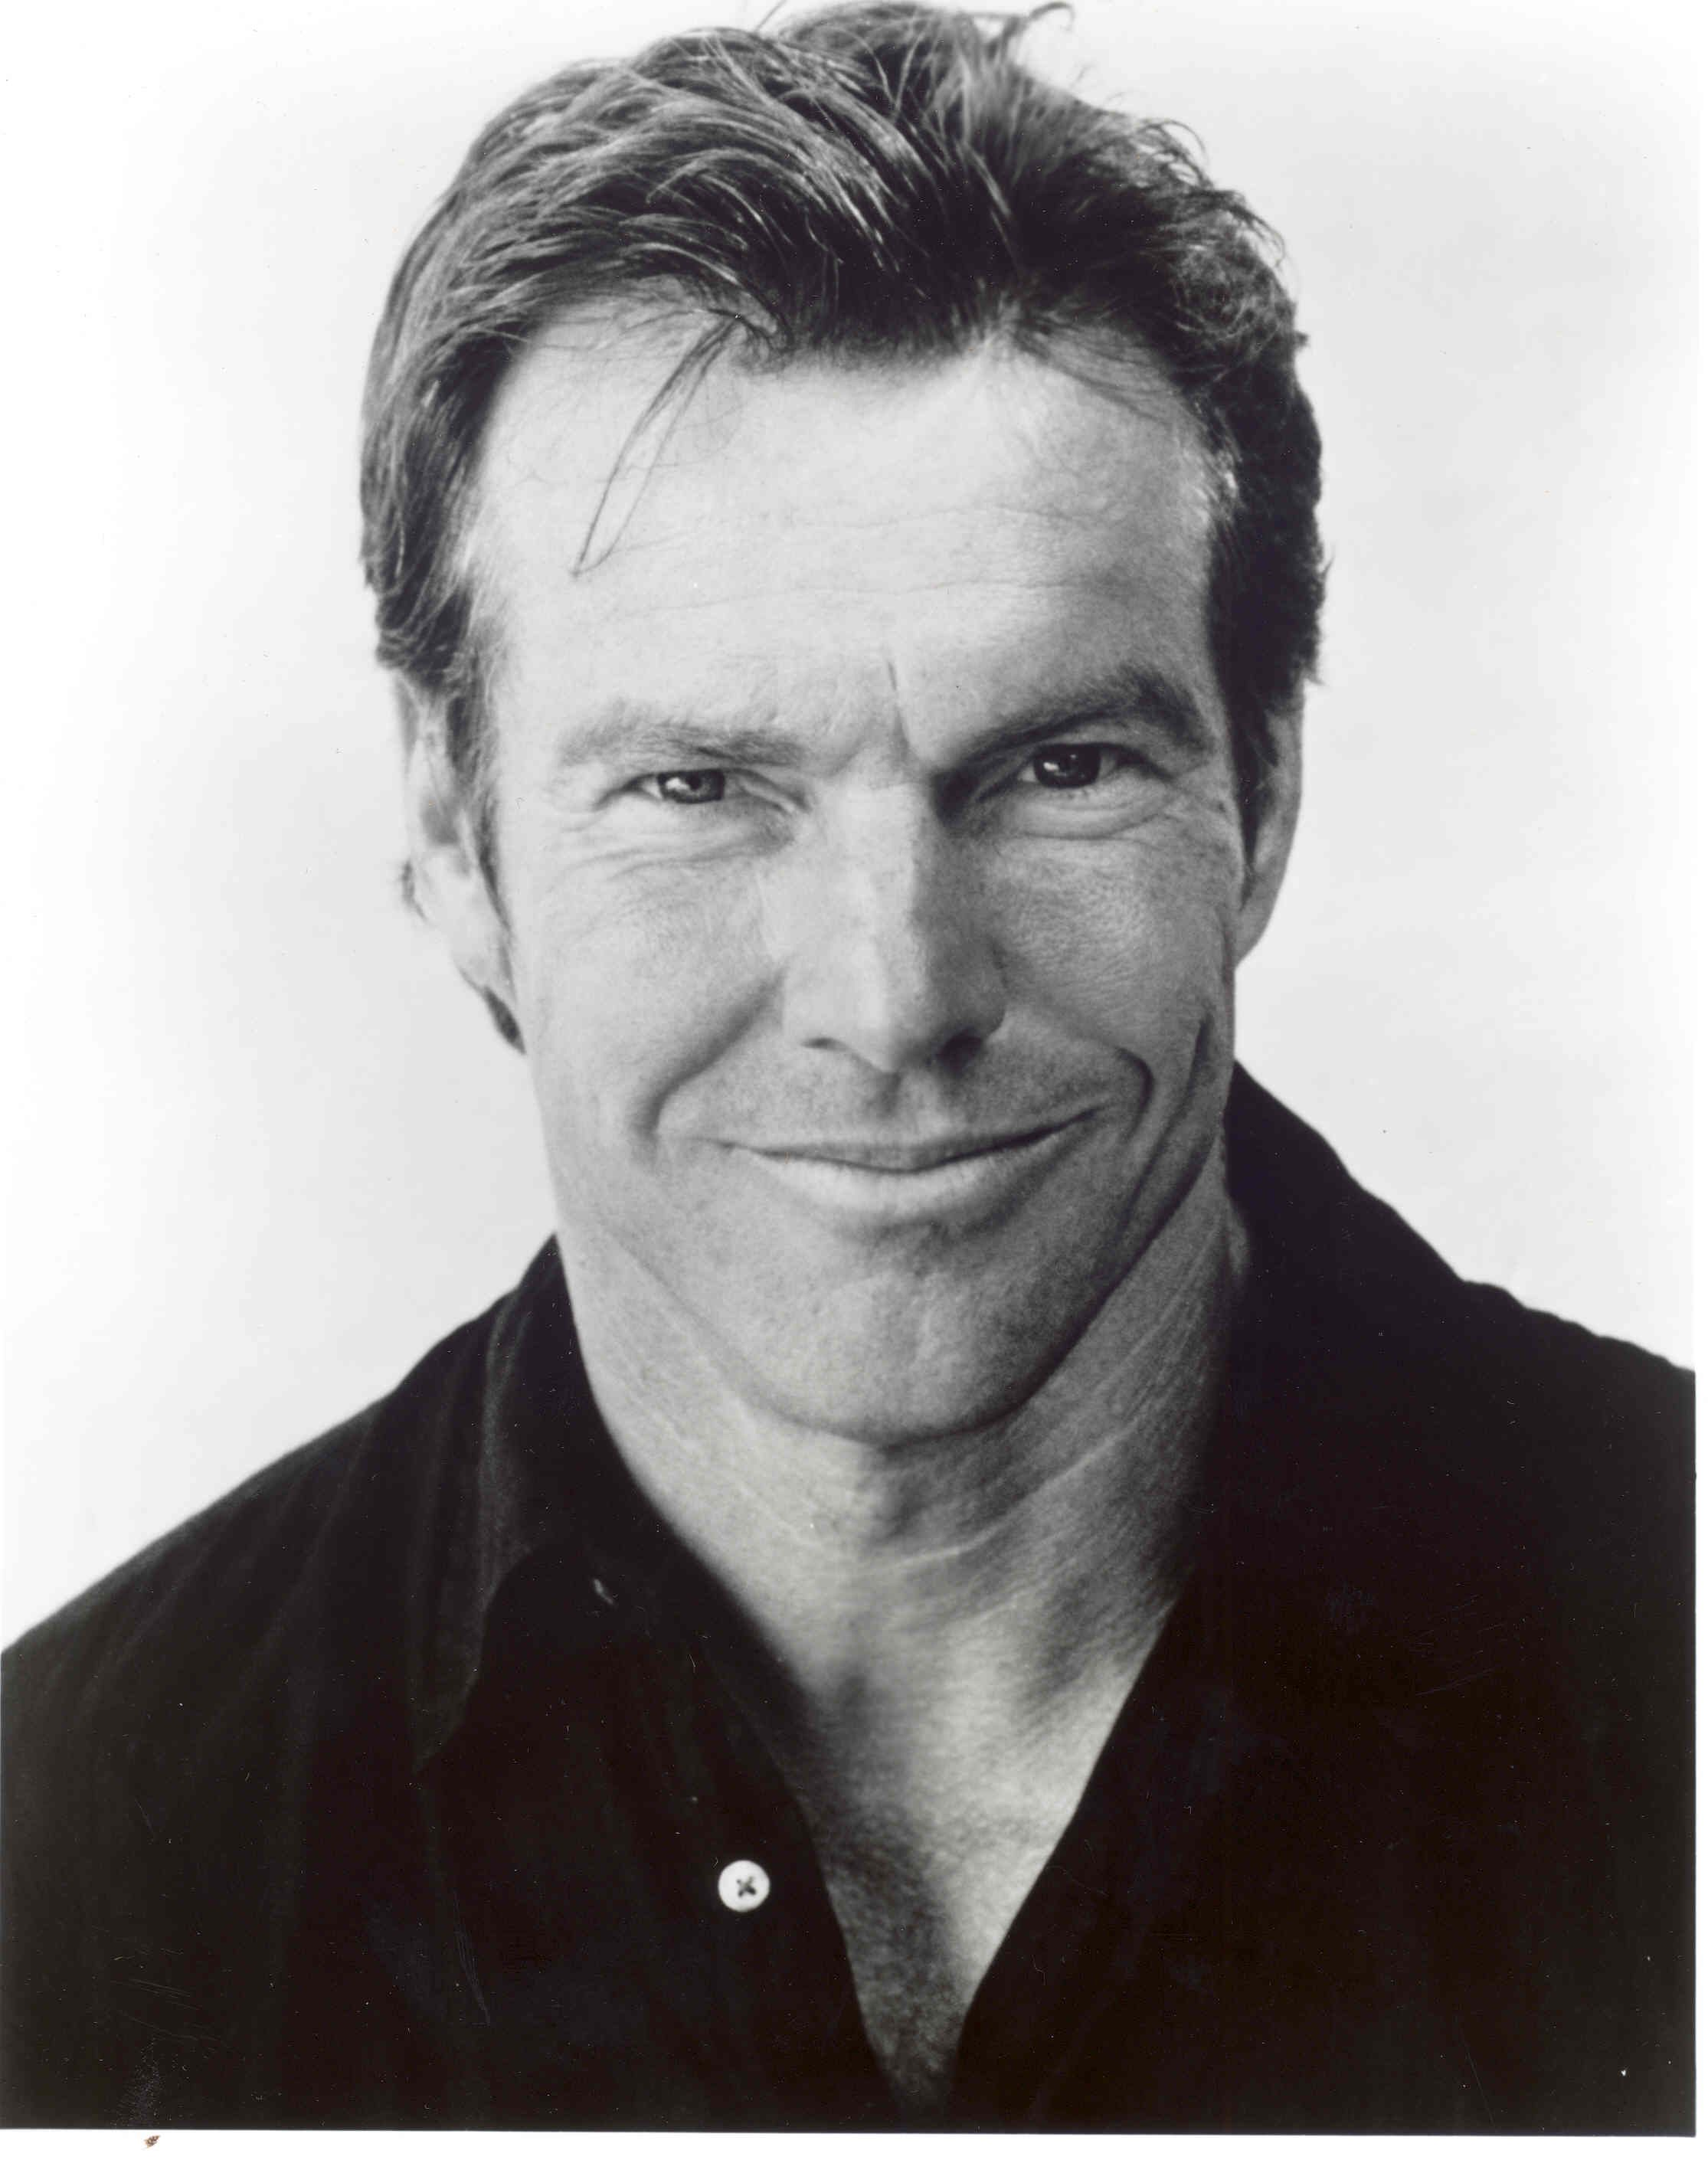 Dennis William Quaid (born April 9, 1954) is an American actor known for his comedic and dramatic roles.